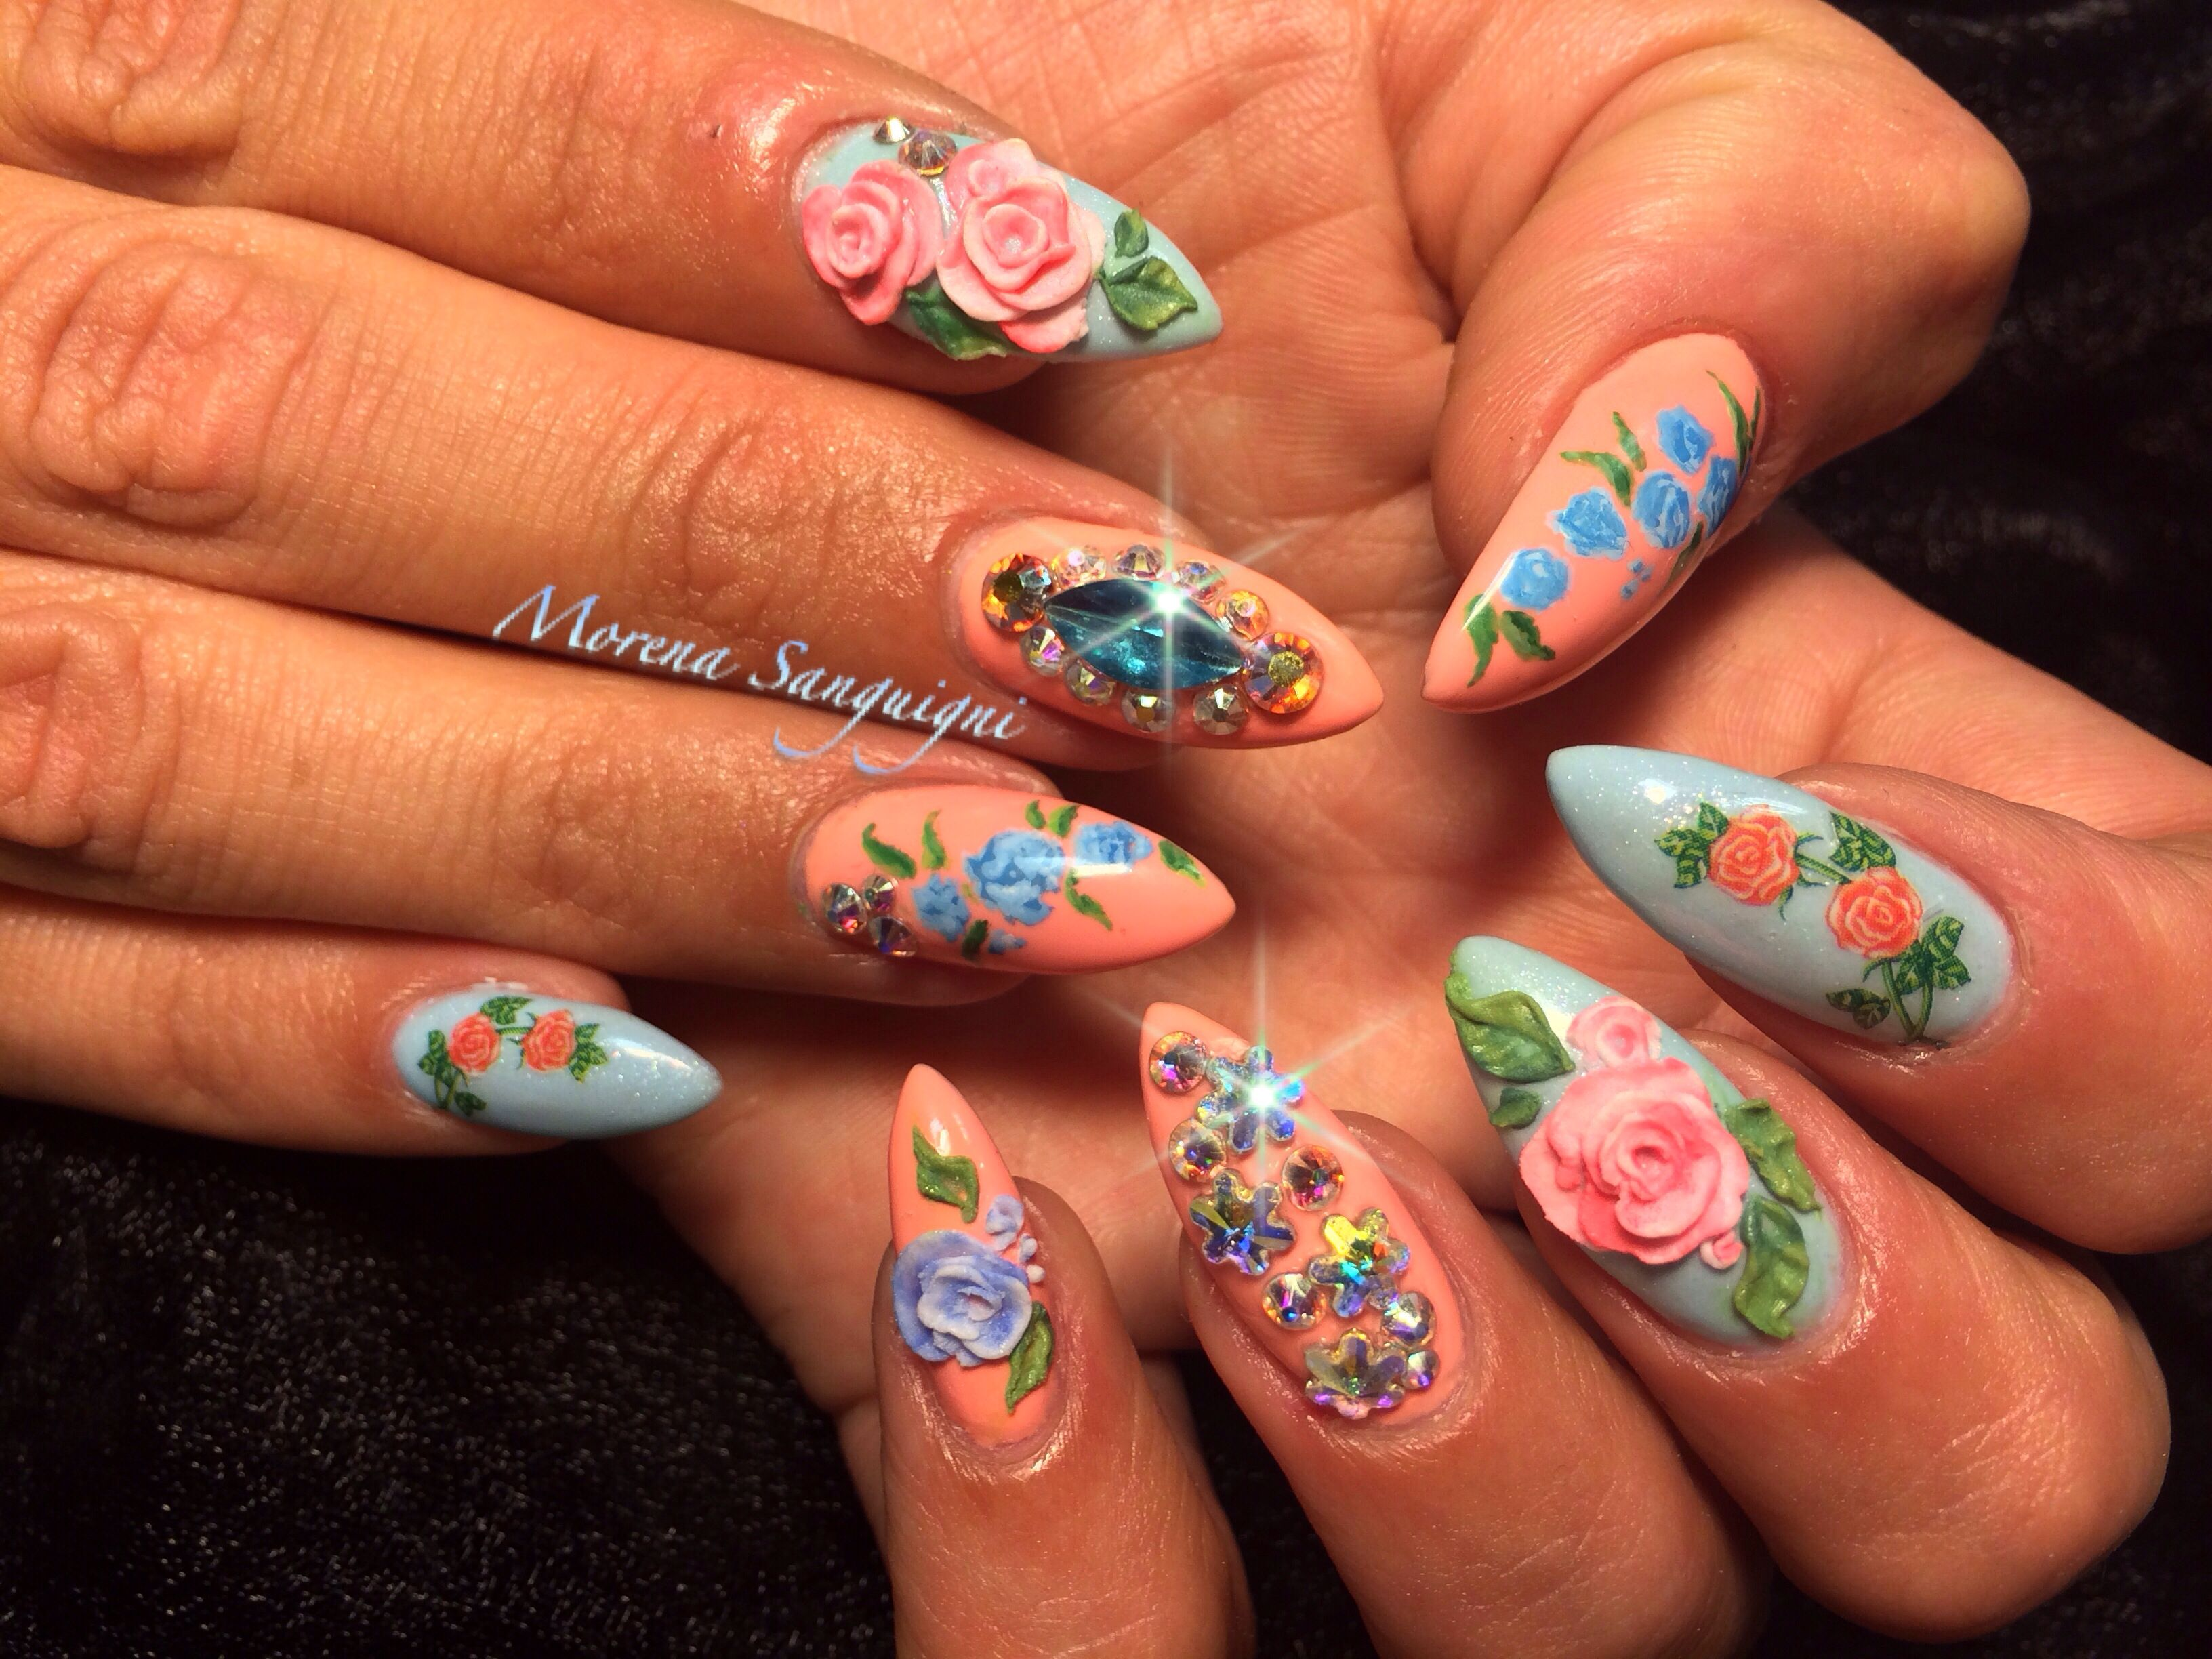 Acrylic Nails With Hand Painted Nail Art Roses Peach Baby